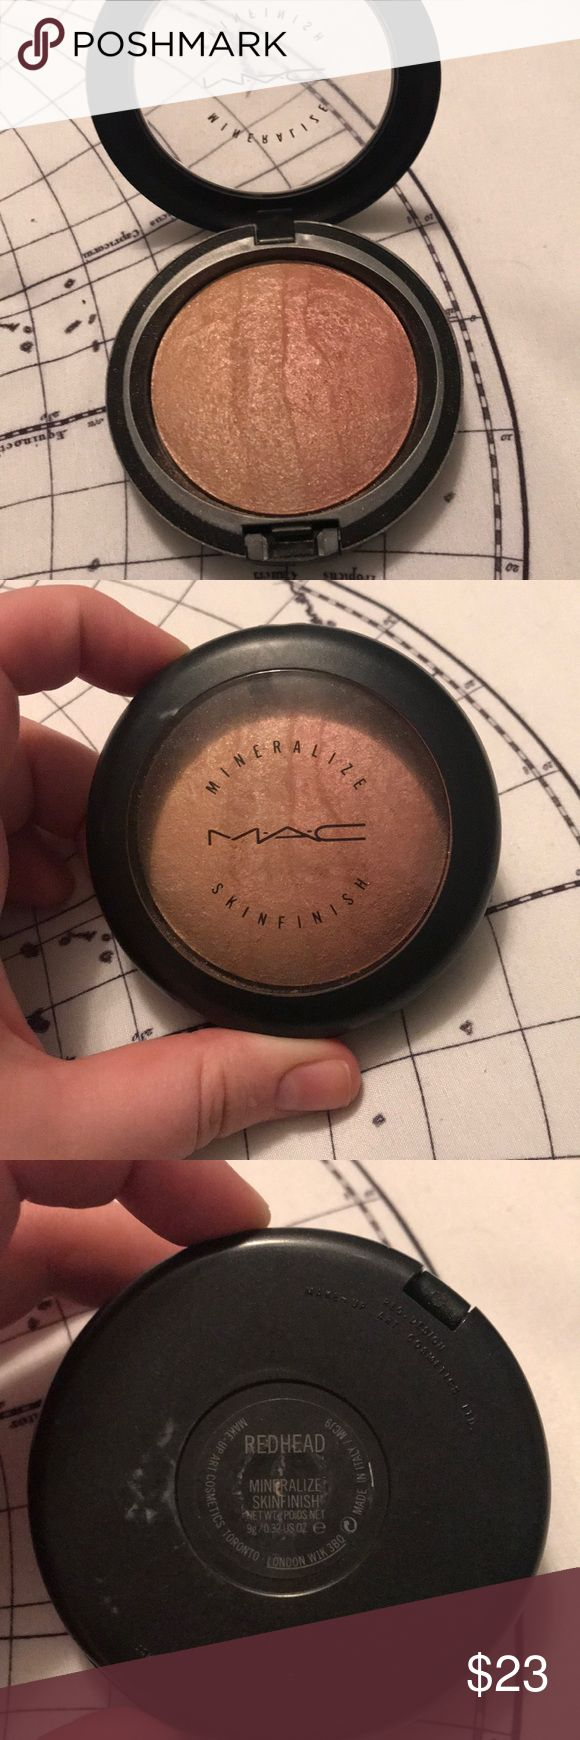 MAC Redhead MSF Like new, swatched once or twice. Authentic, purchased from MAC. Price IS negotiable!!  Bundle and save! MAC Cosmetics Makeup Blush